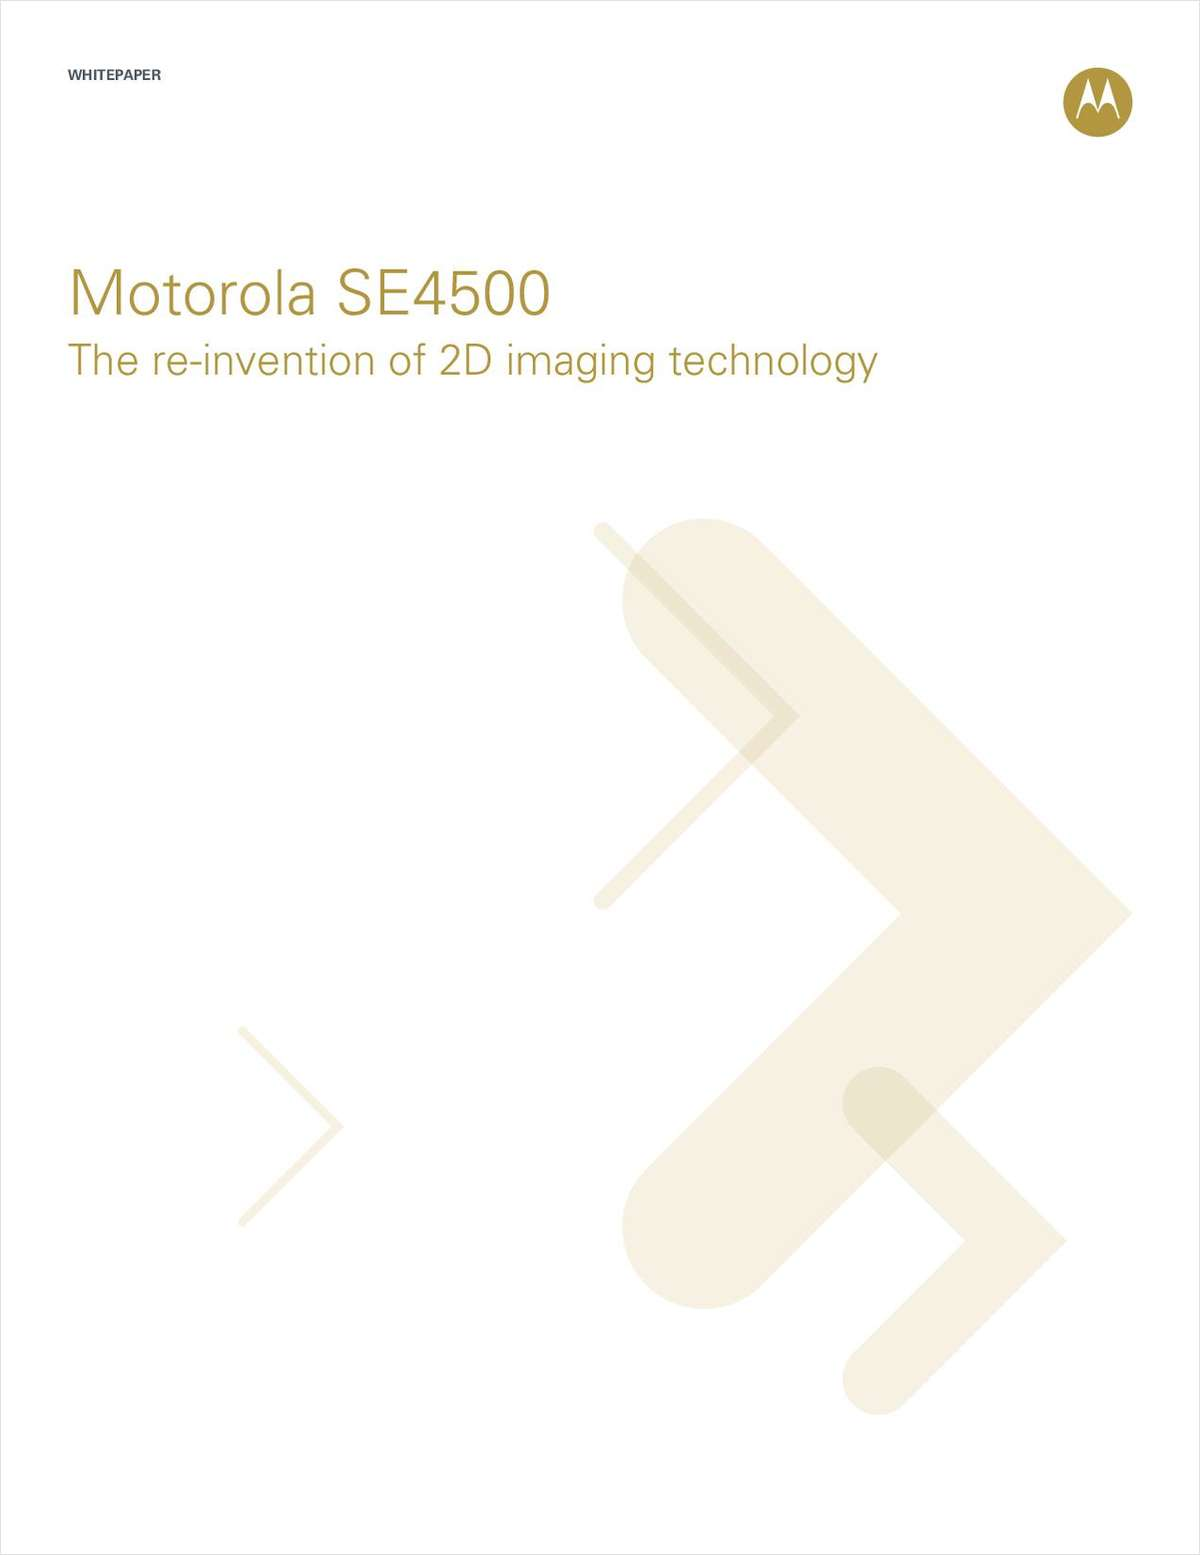 2D Imaging Technology Reinvented